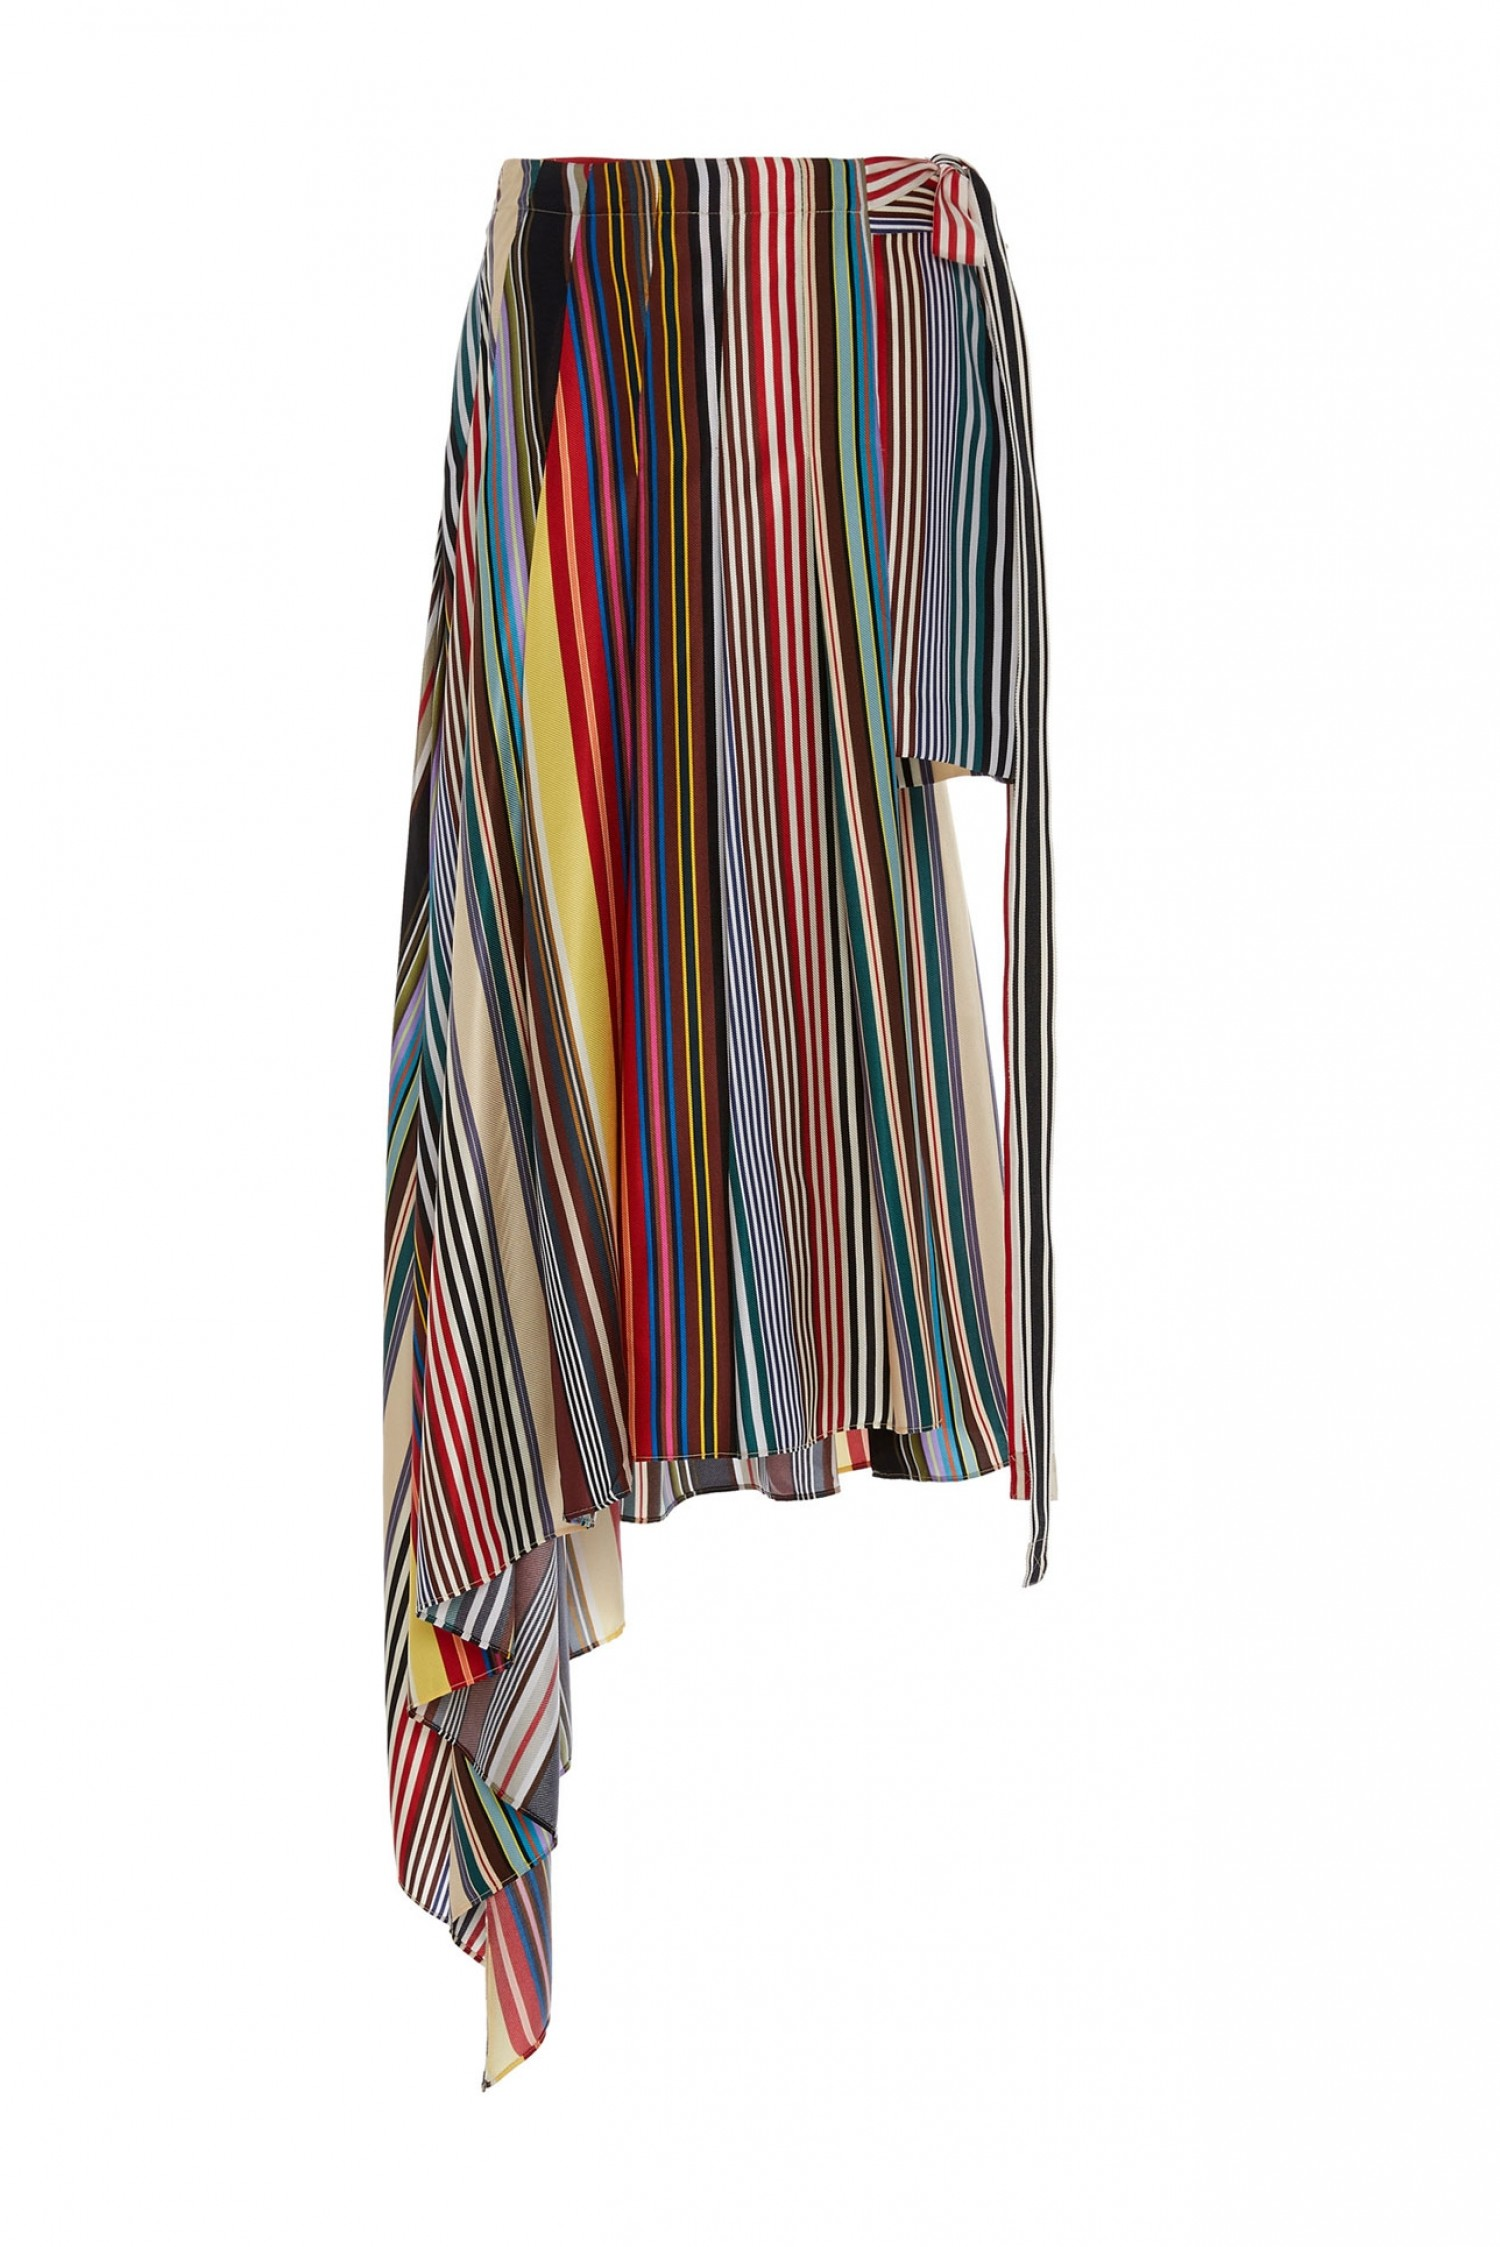 Monse Women's Pleated Wrap Shorts in Multi Colored Print Front